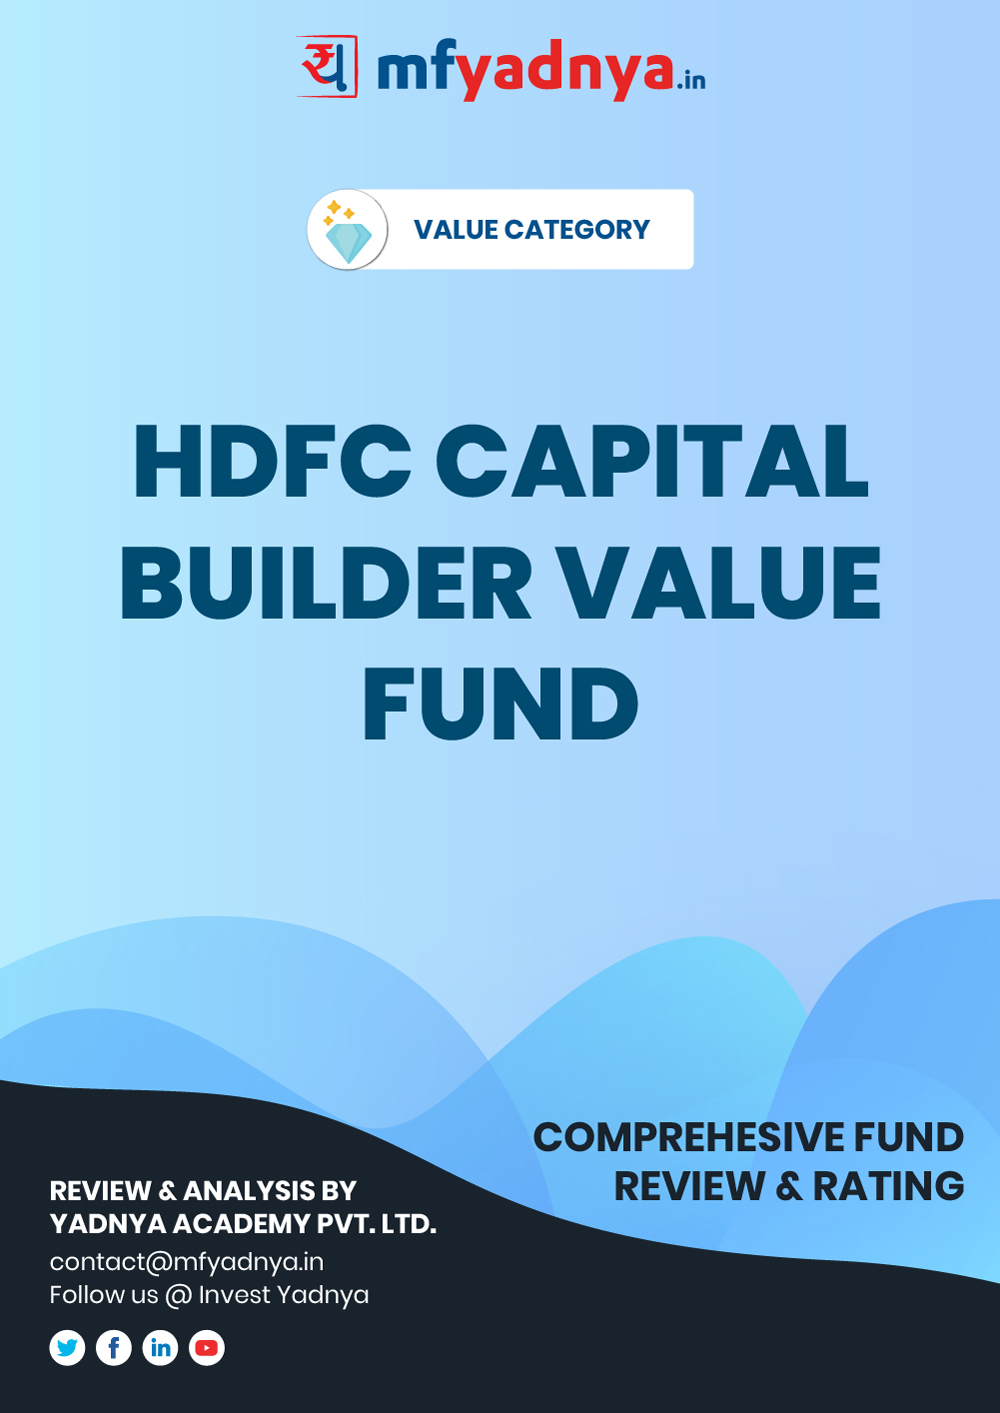 Value or Contra Category Review - HDFC Capital Builder Value Fund. Most Comprehensive and detailed MF review based on Yadnya's proprietary methodology of Green, Yellow & Red Star. Detailed Analysis & Review based on Sept 30th, 2019 data.